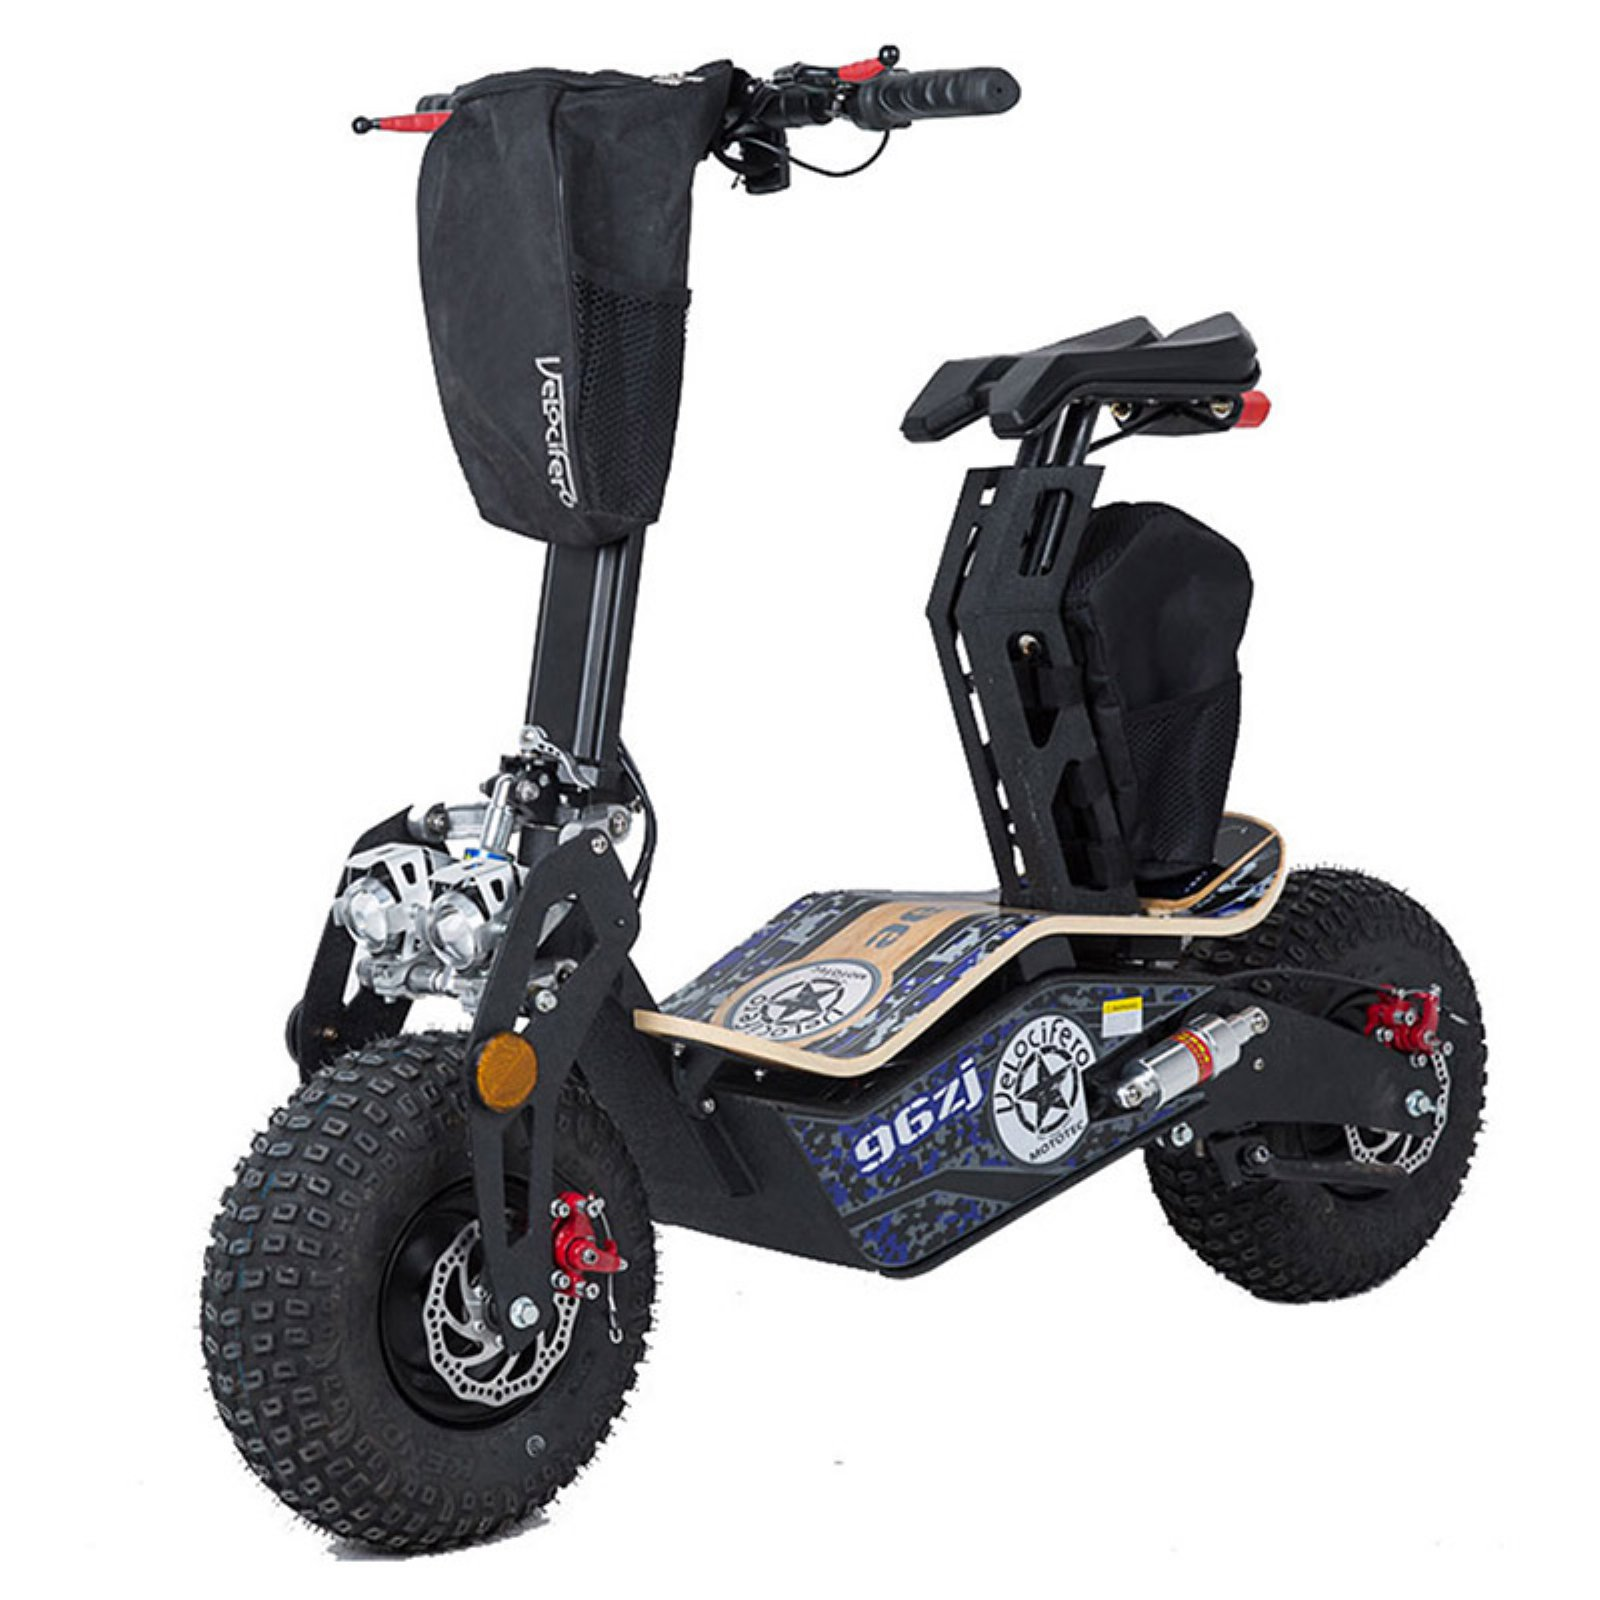 MotoTec Mad 1600w 48v Electric Scooter by Overstock